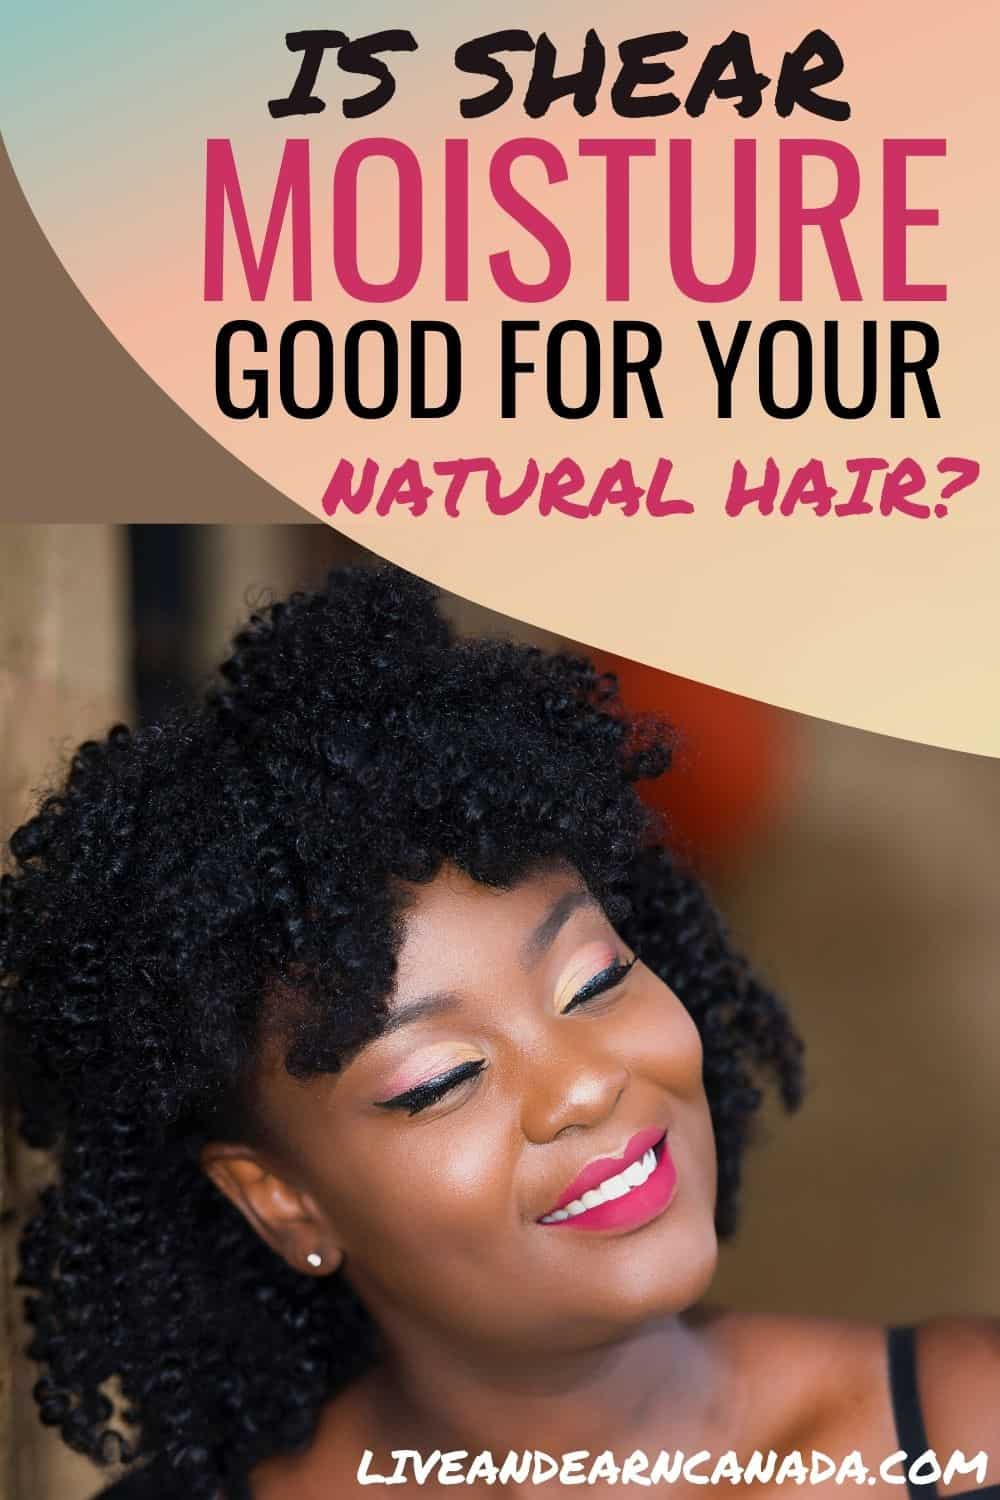 Is shear moisture cruelty free and is it good for your natural hair? Check out the shear moisture products #shearmoisture